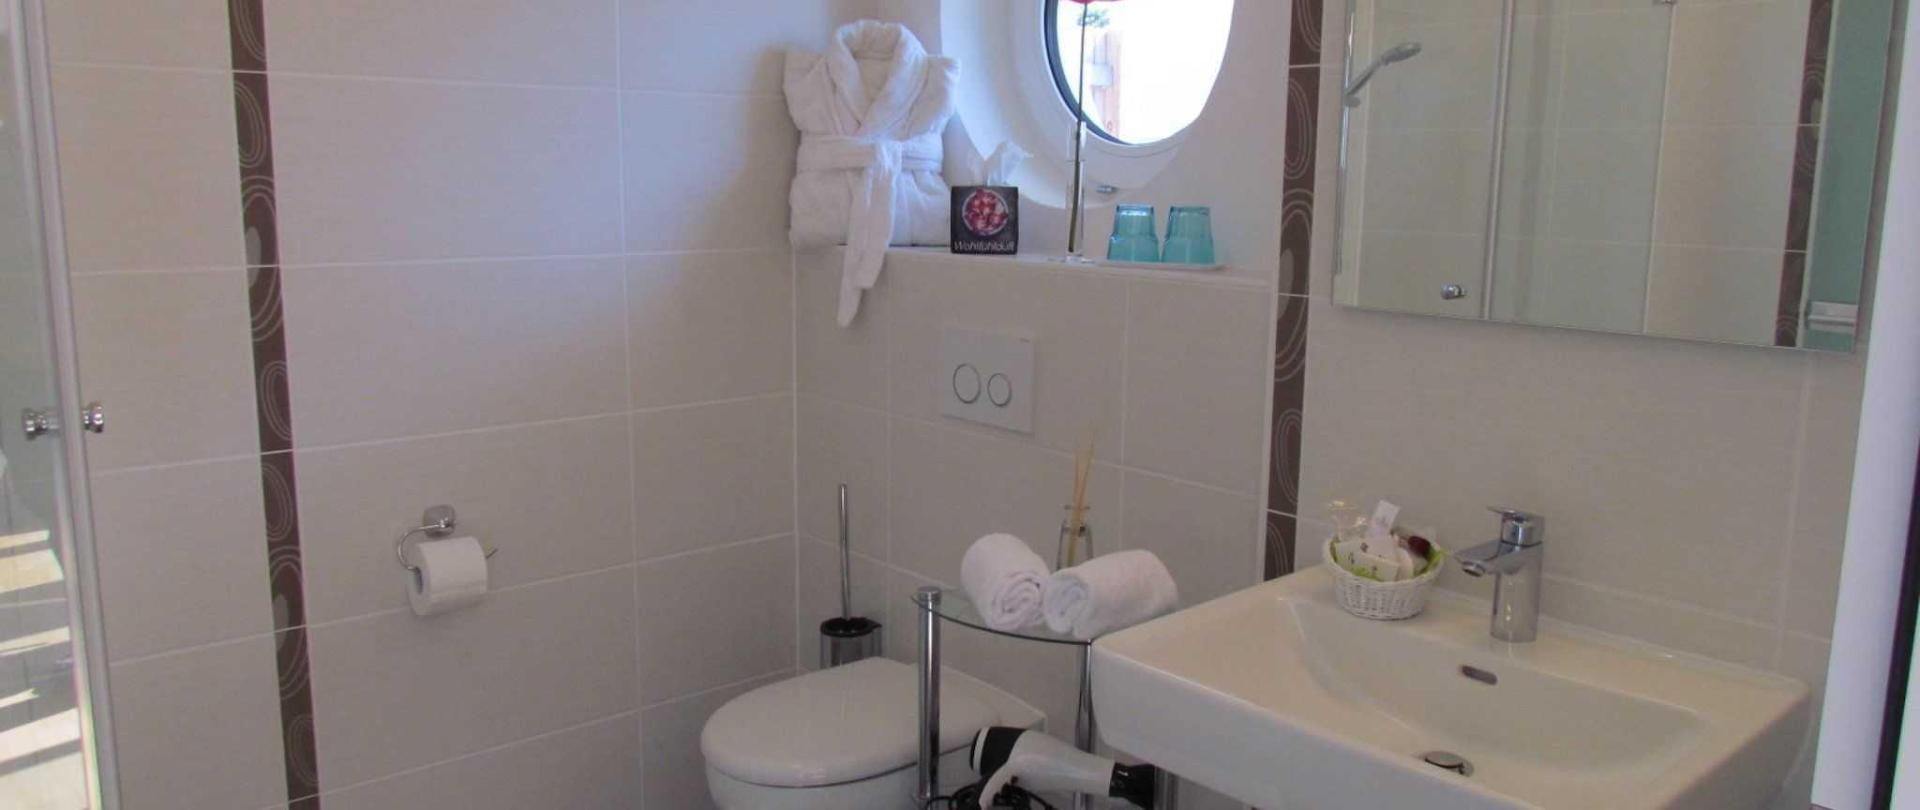 Bathroom with window in some apartments.JPG